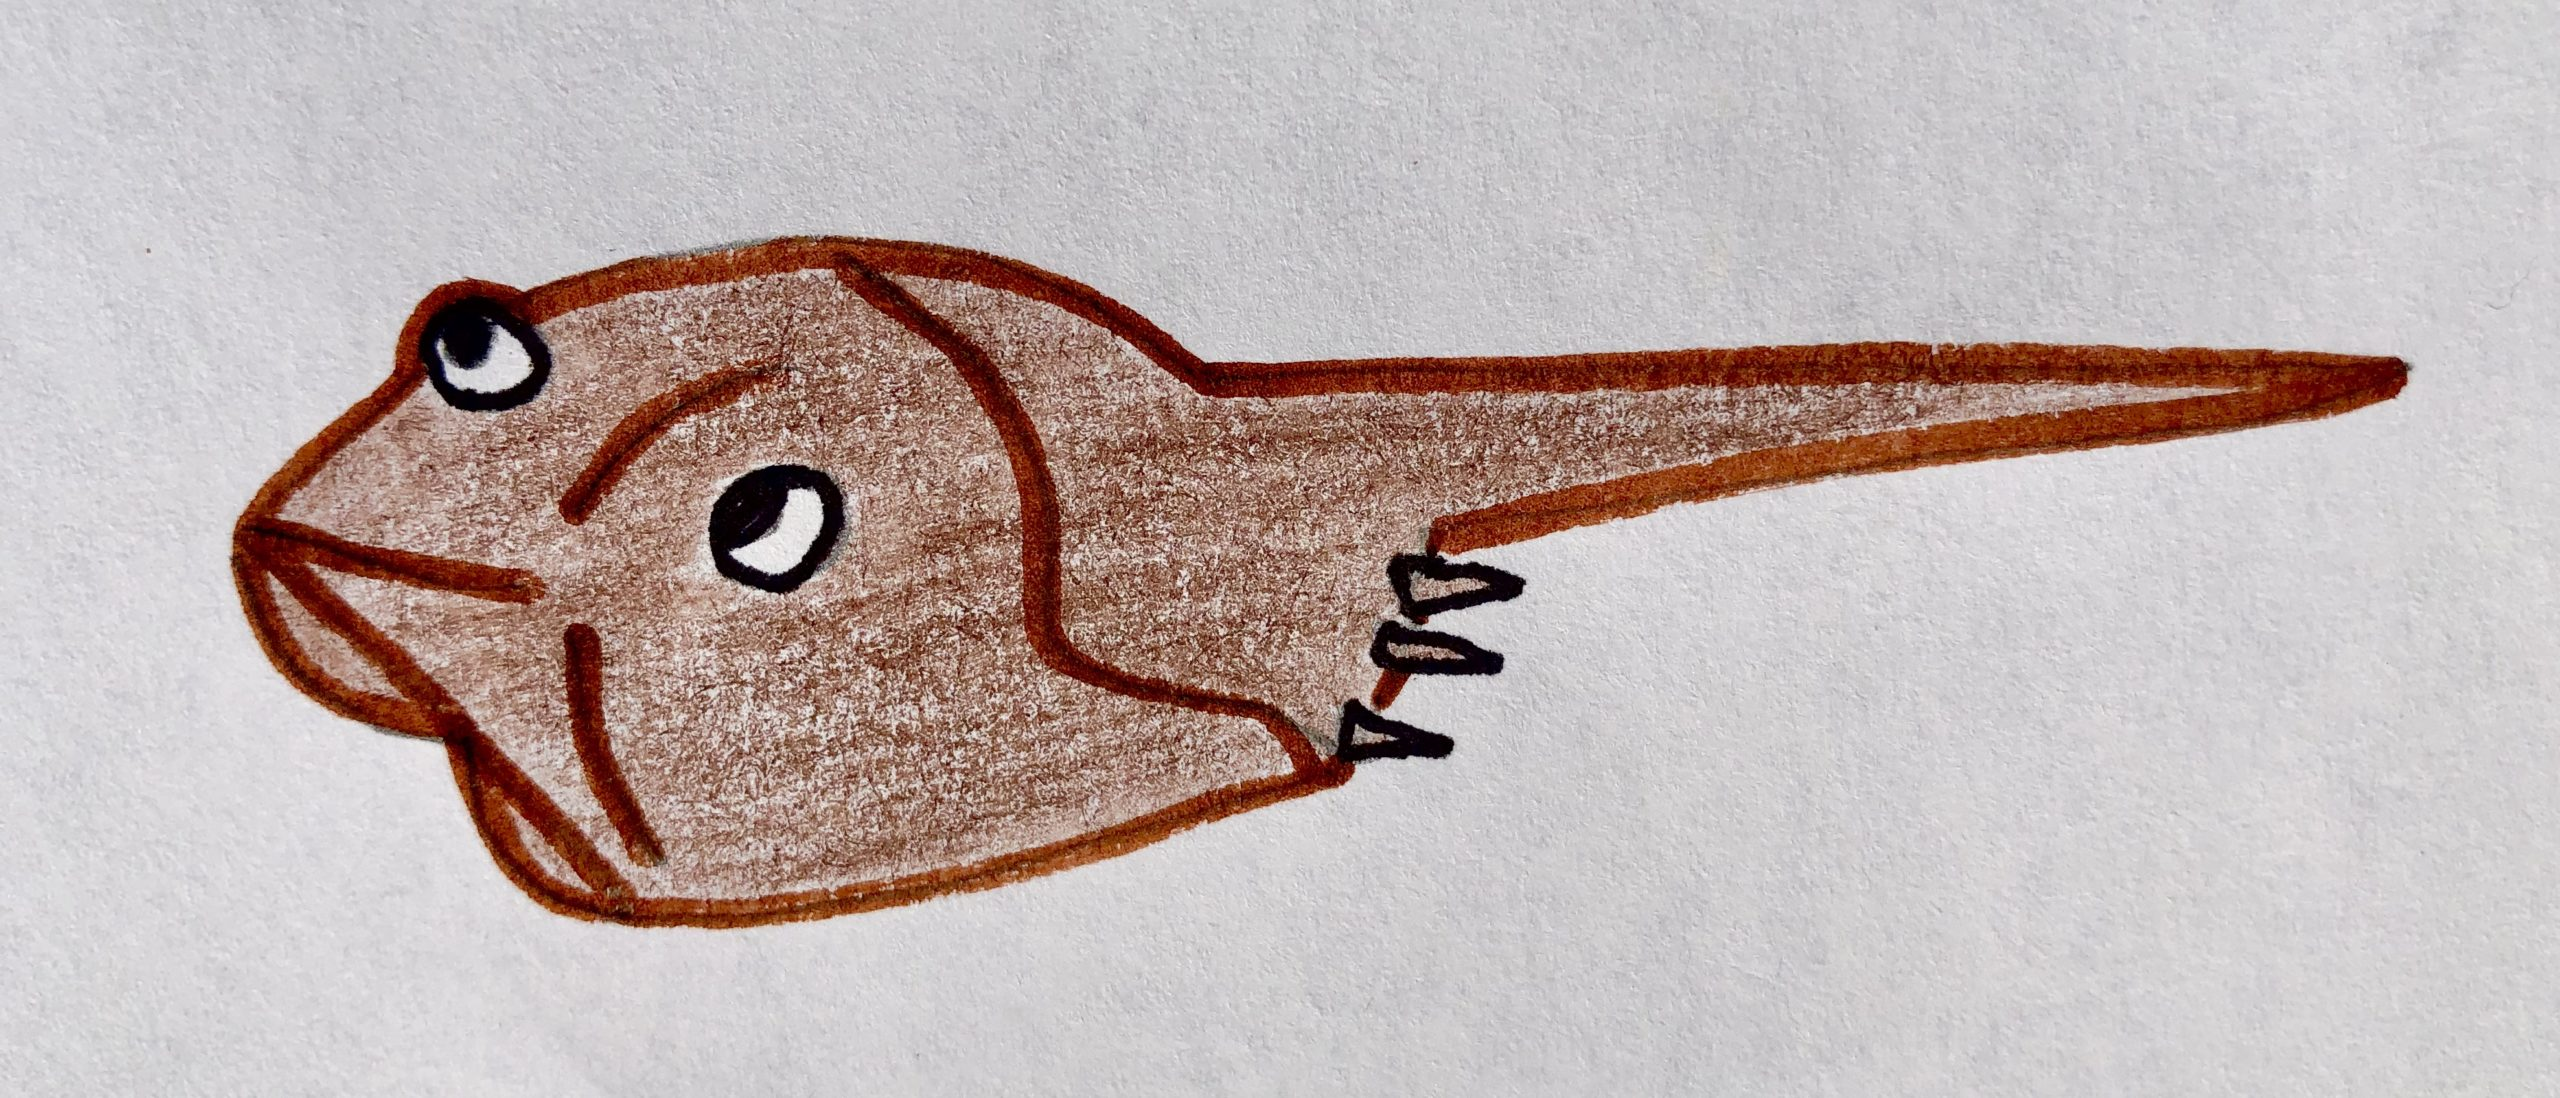 Drawing of a brown horseshoe crab for the children's story, The Very Brave Little Fish